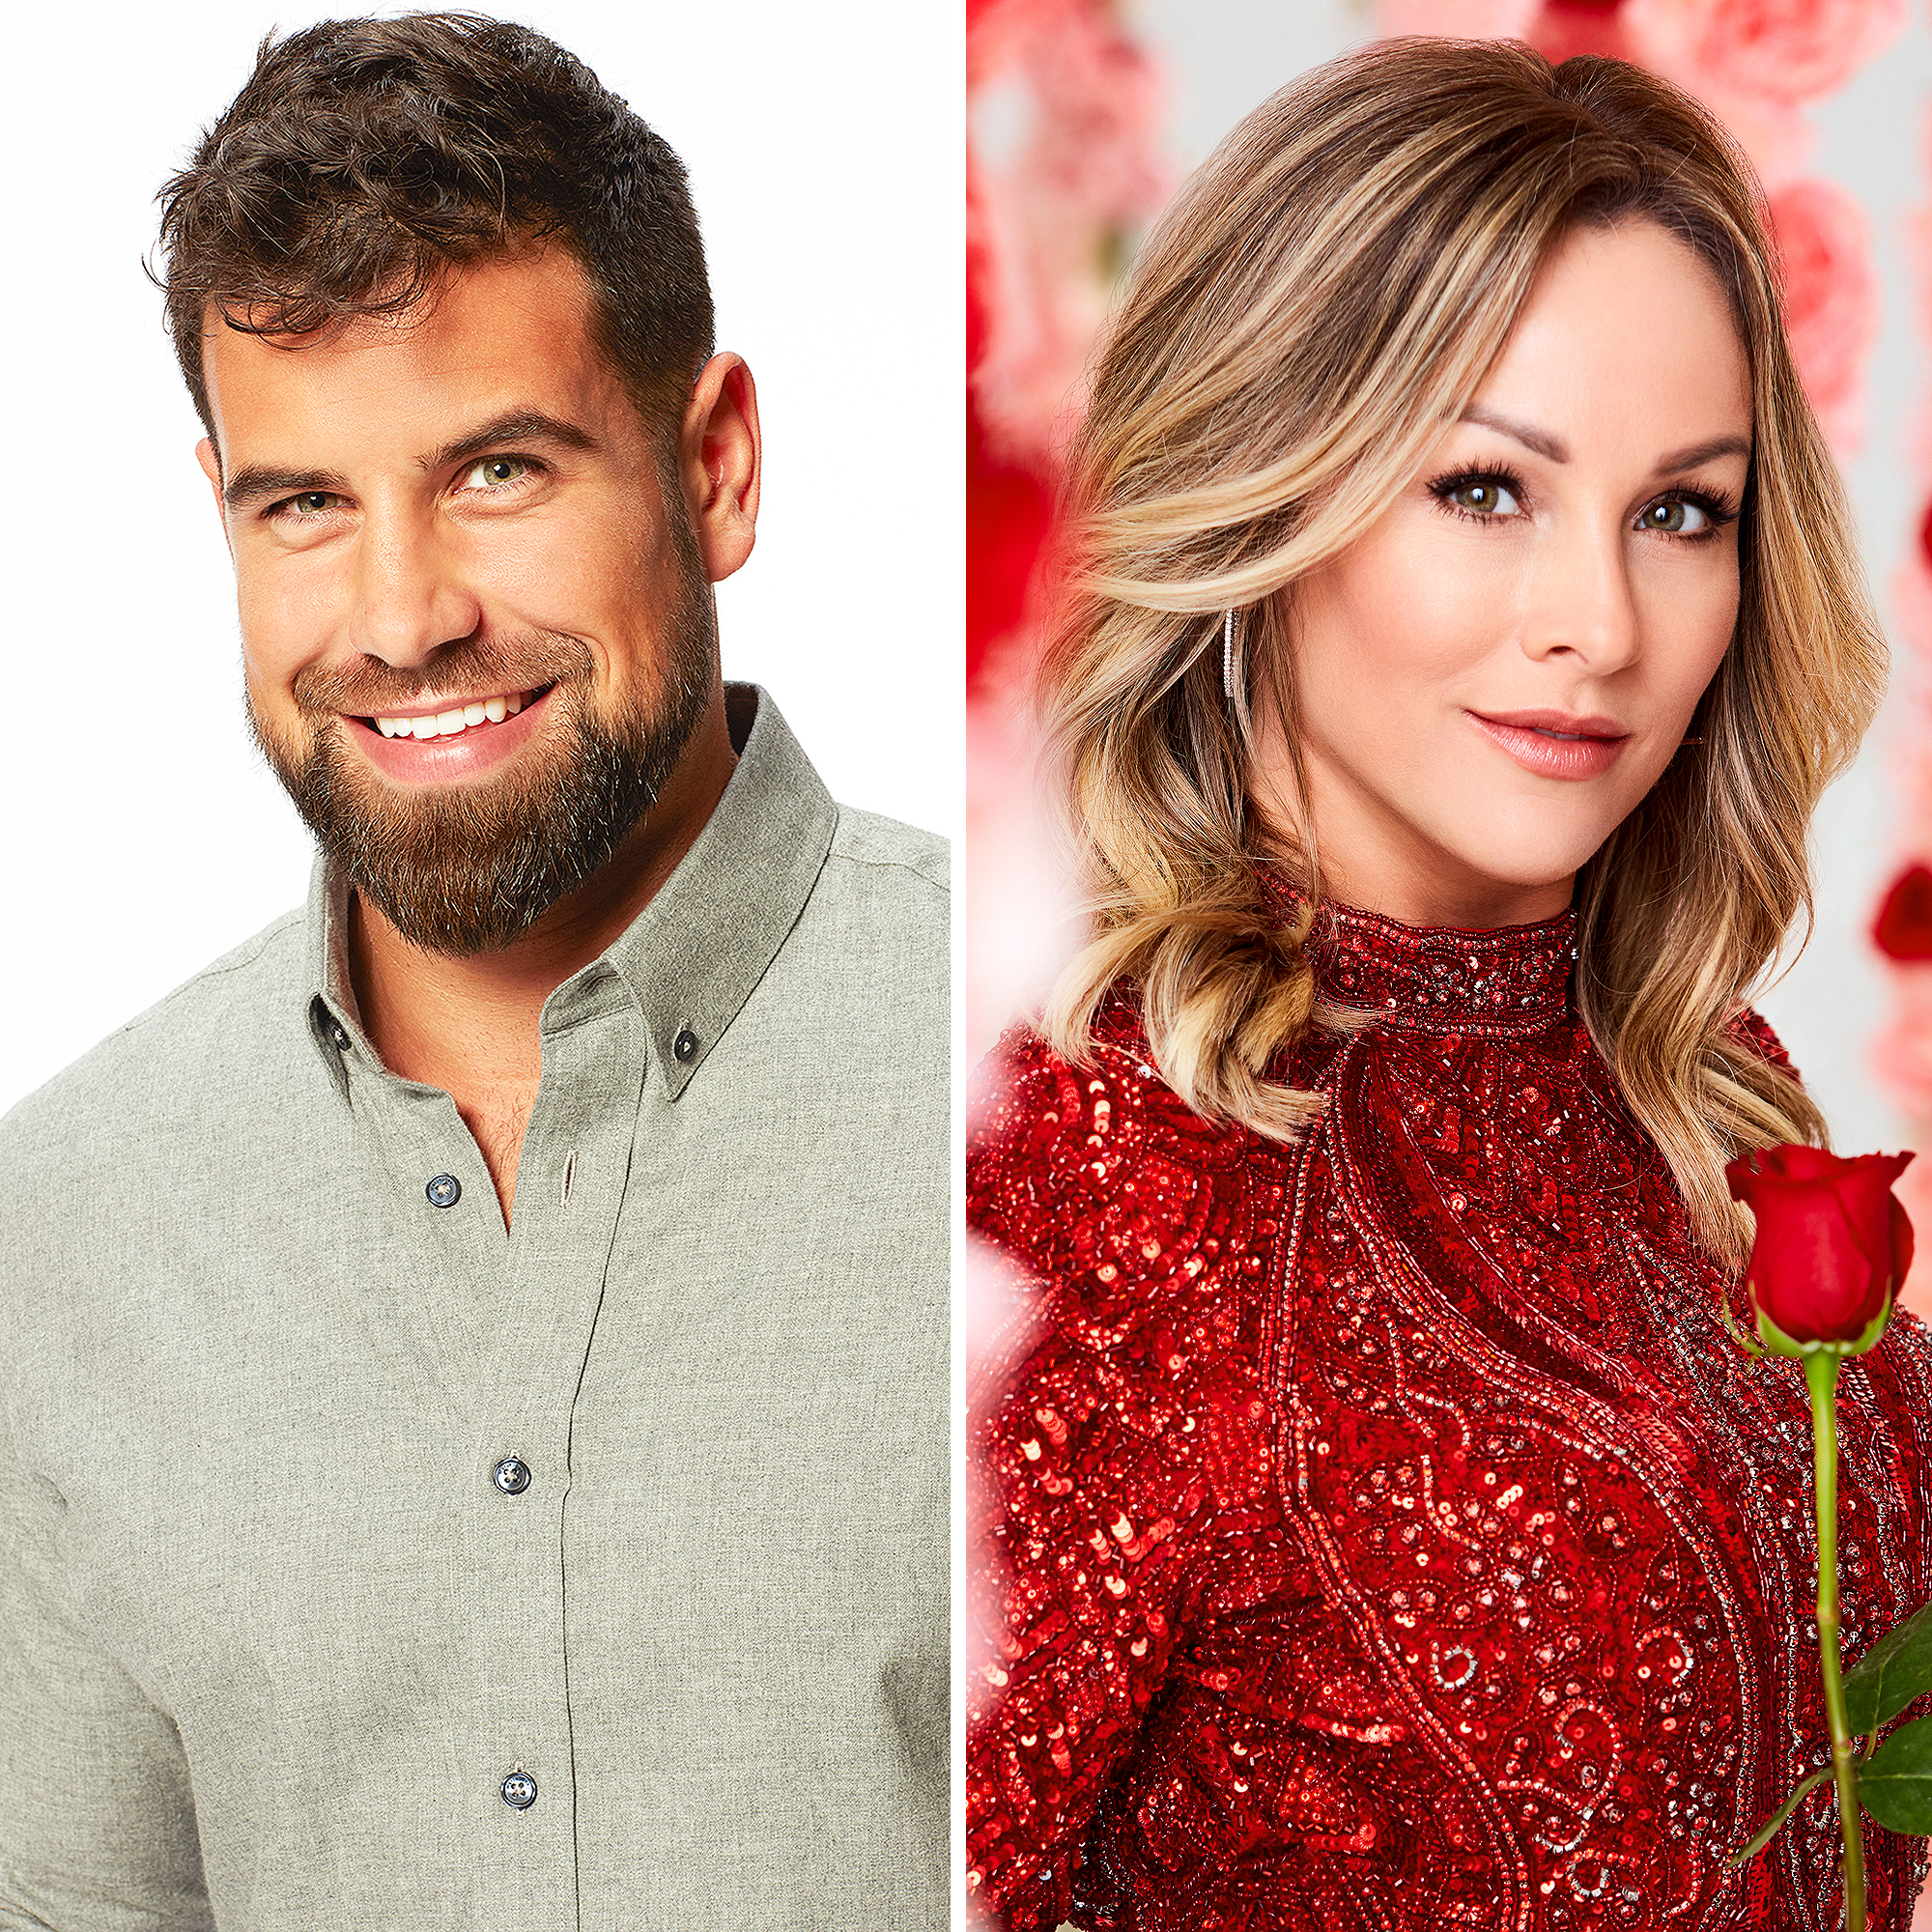 Who Is Blake Moynes? Meet the Controversial 'Bachelorette' Contestant